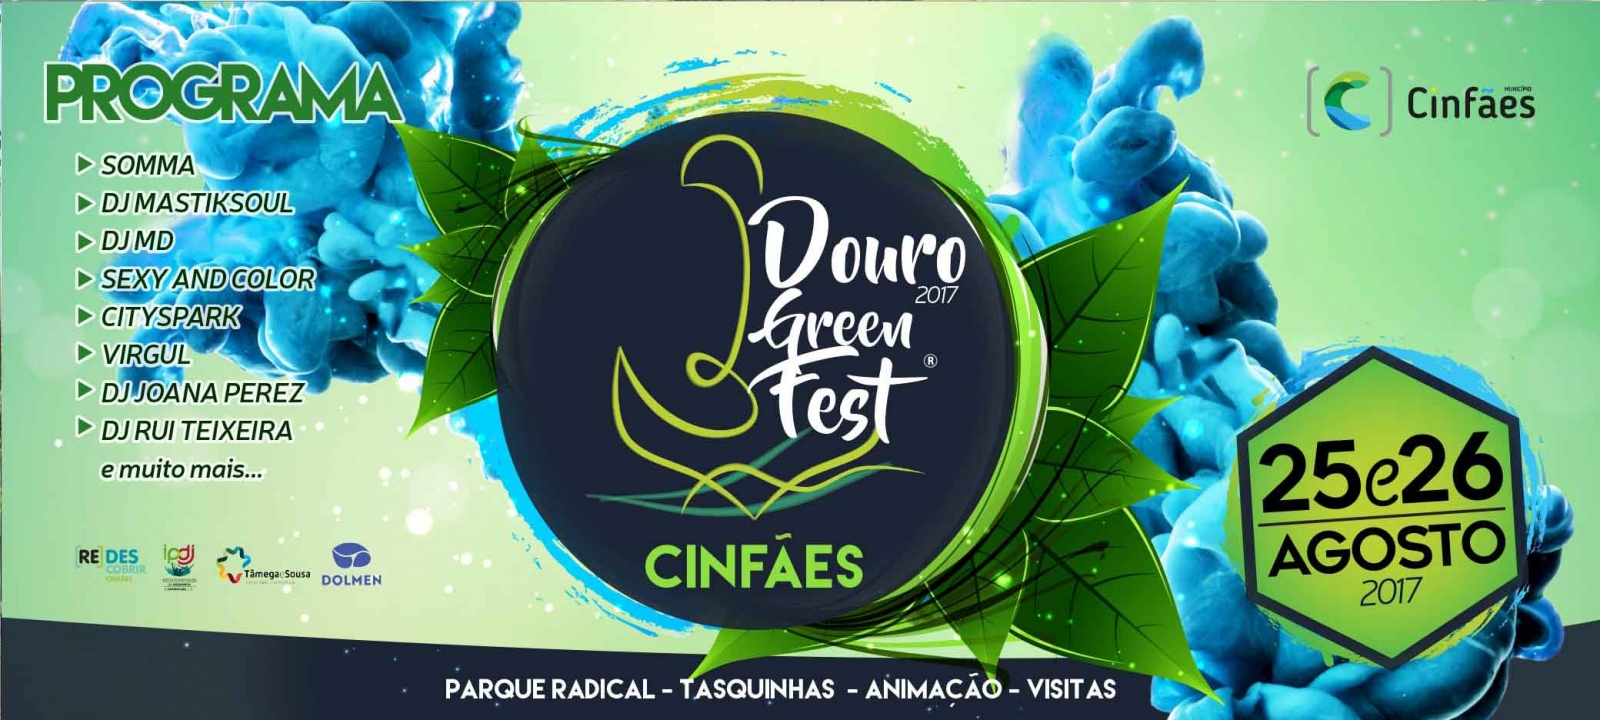 Virgul no Douro Green Fest